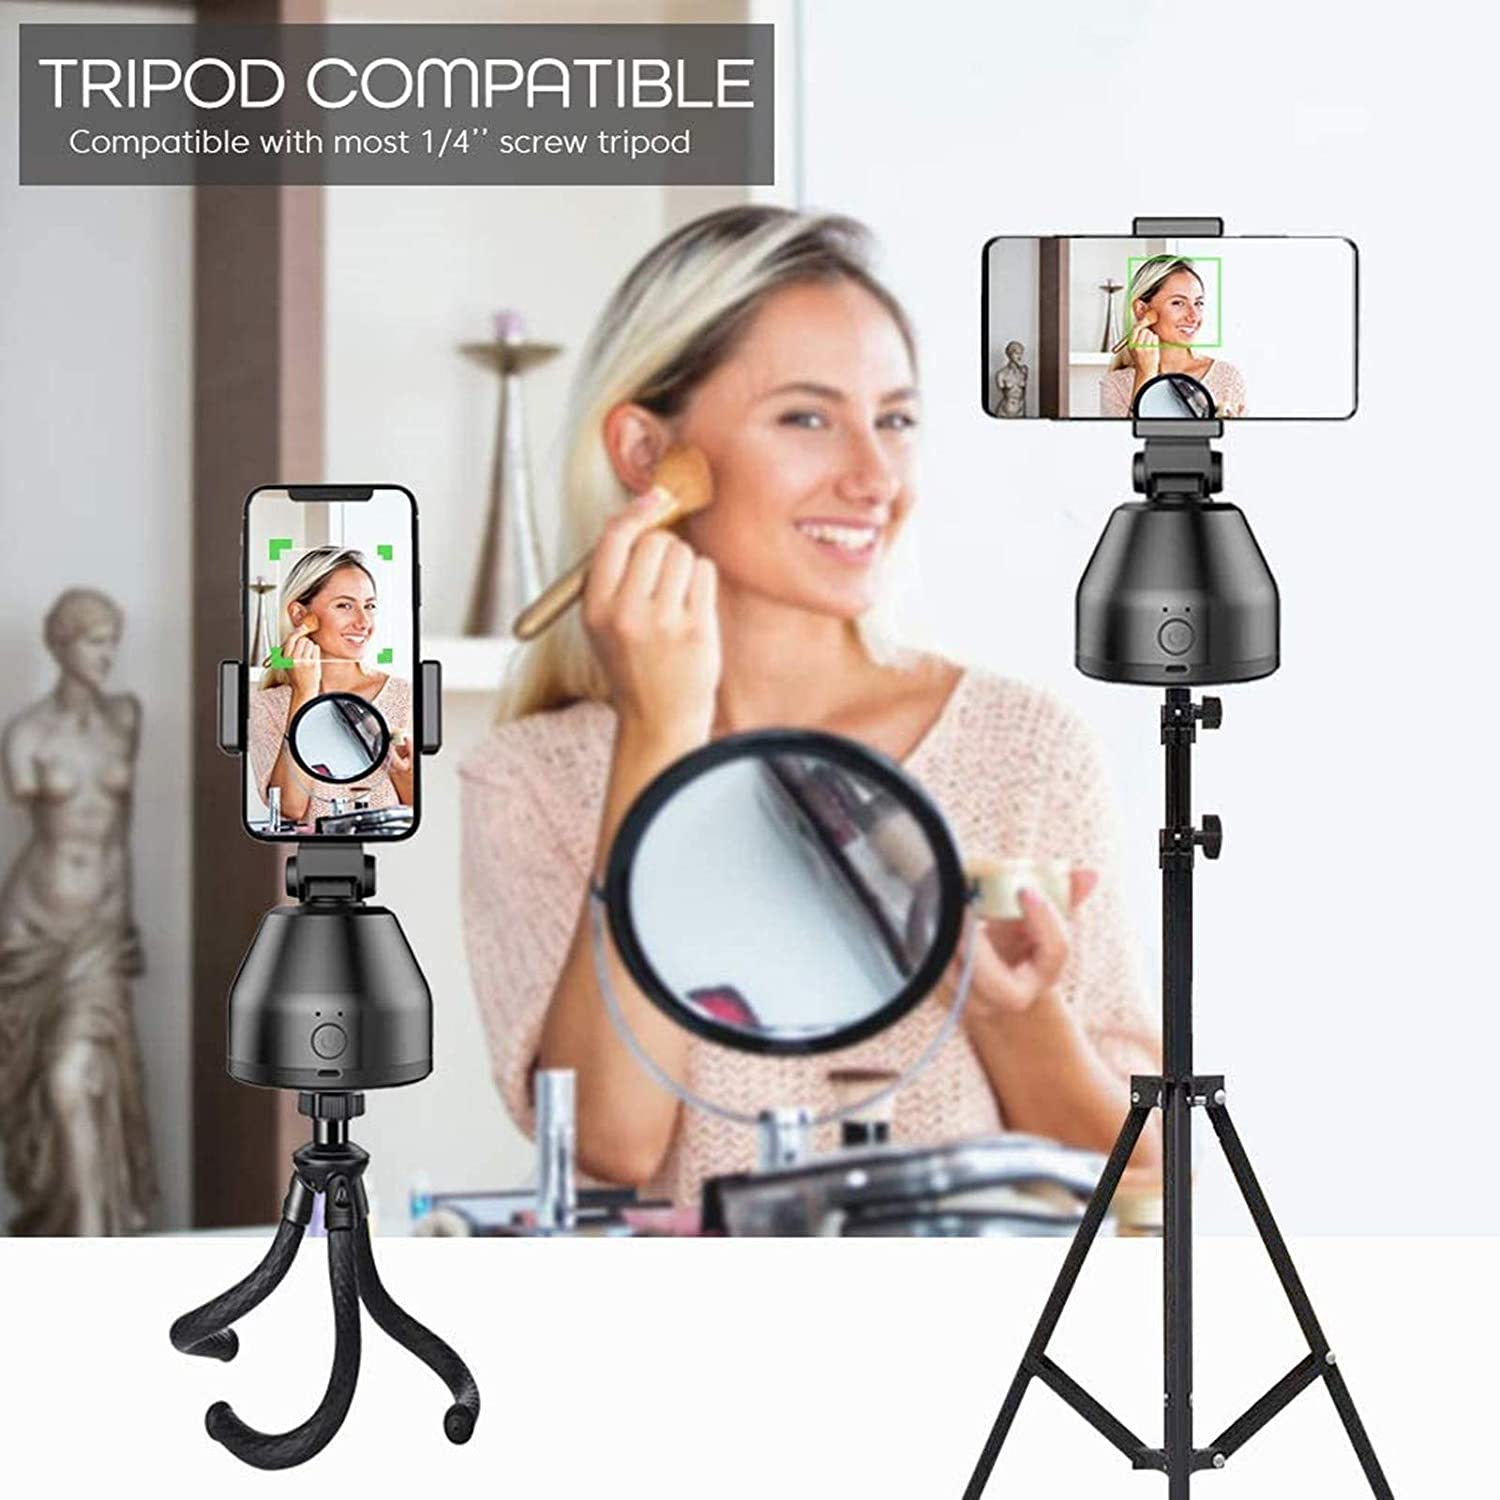 Black Yizieco Selfie Stick 360/° Rotation Smart Gimbal Phone Stabilizer Rechargeable Camera Mount Portable Robot Cameraman for Livestreaming /& Vlog Shooting Compatiable for iOS Android